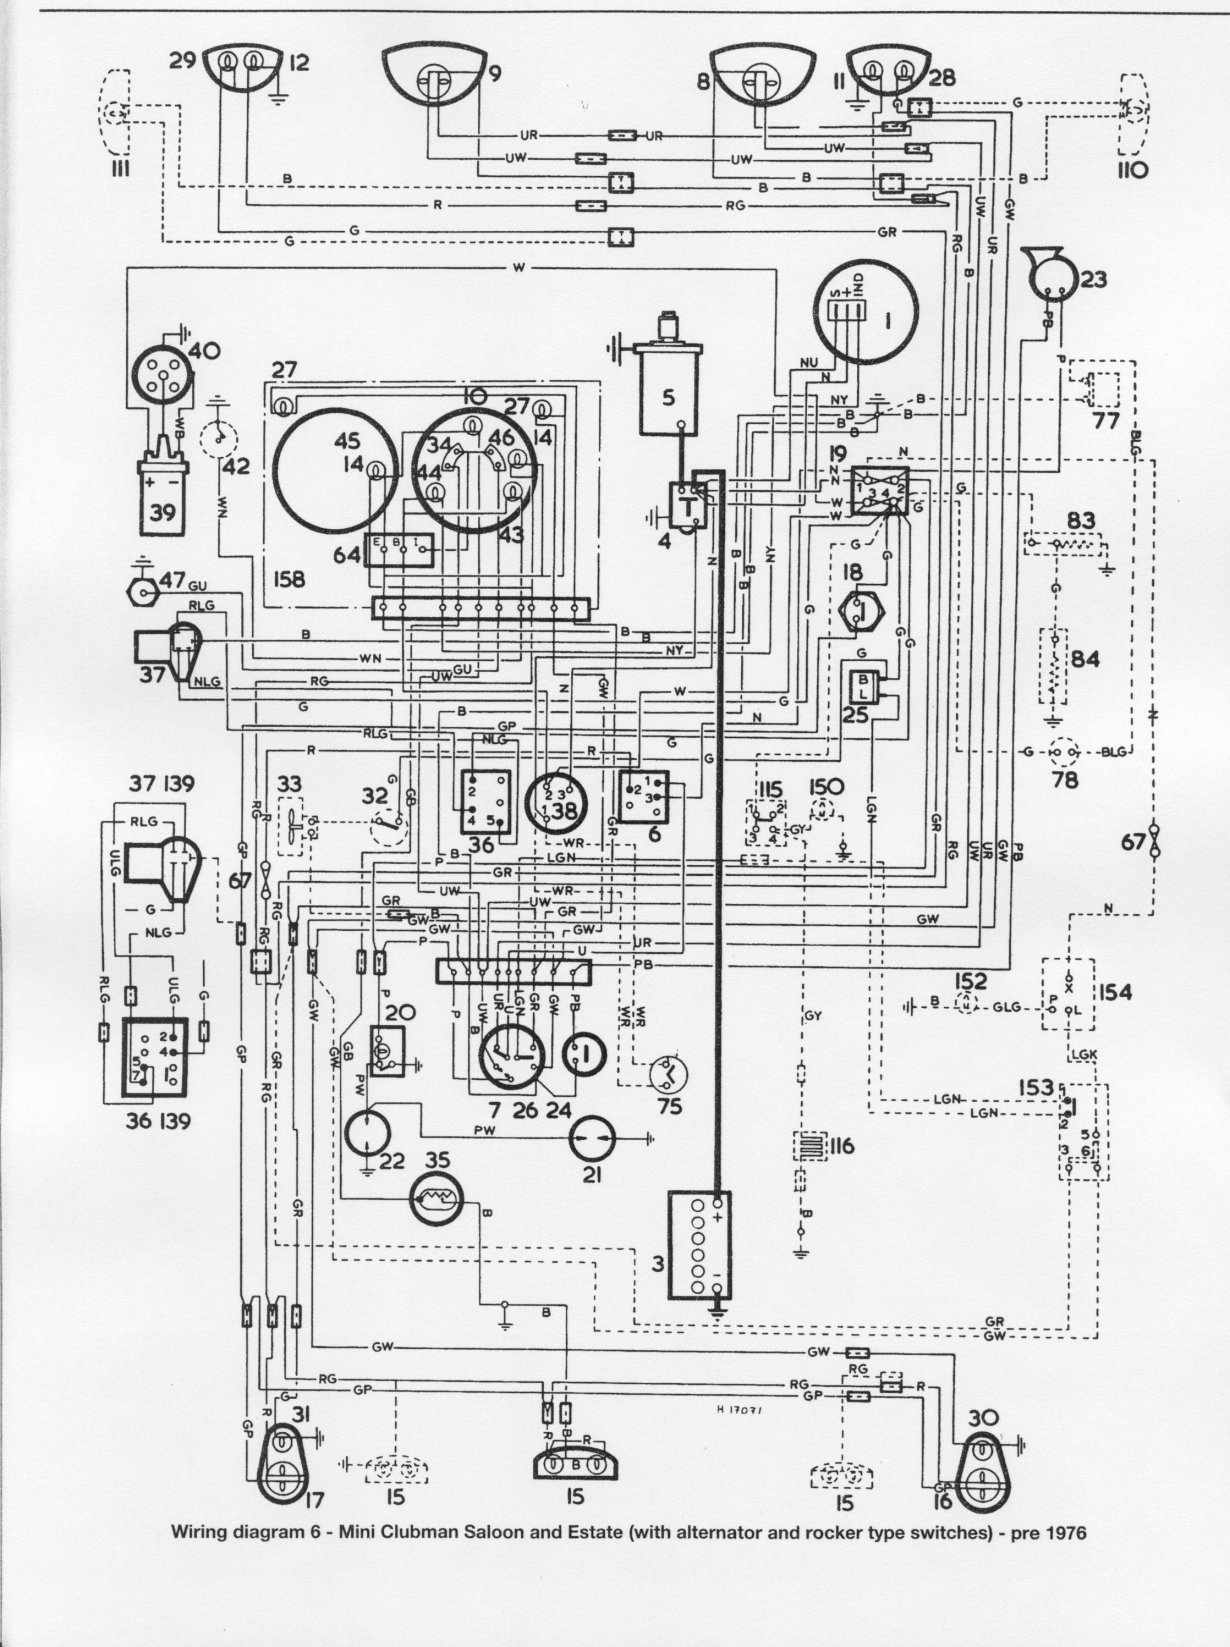 2007 Mini Cooper S Wiring Diagram : 33 Wiring Diagram